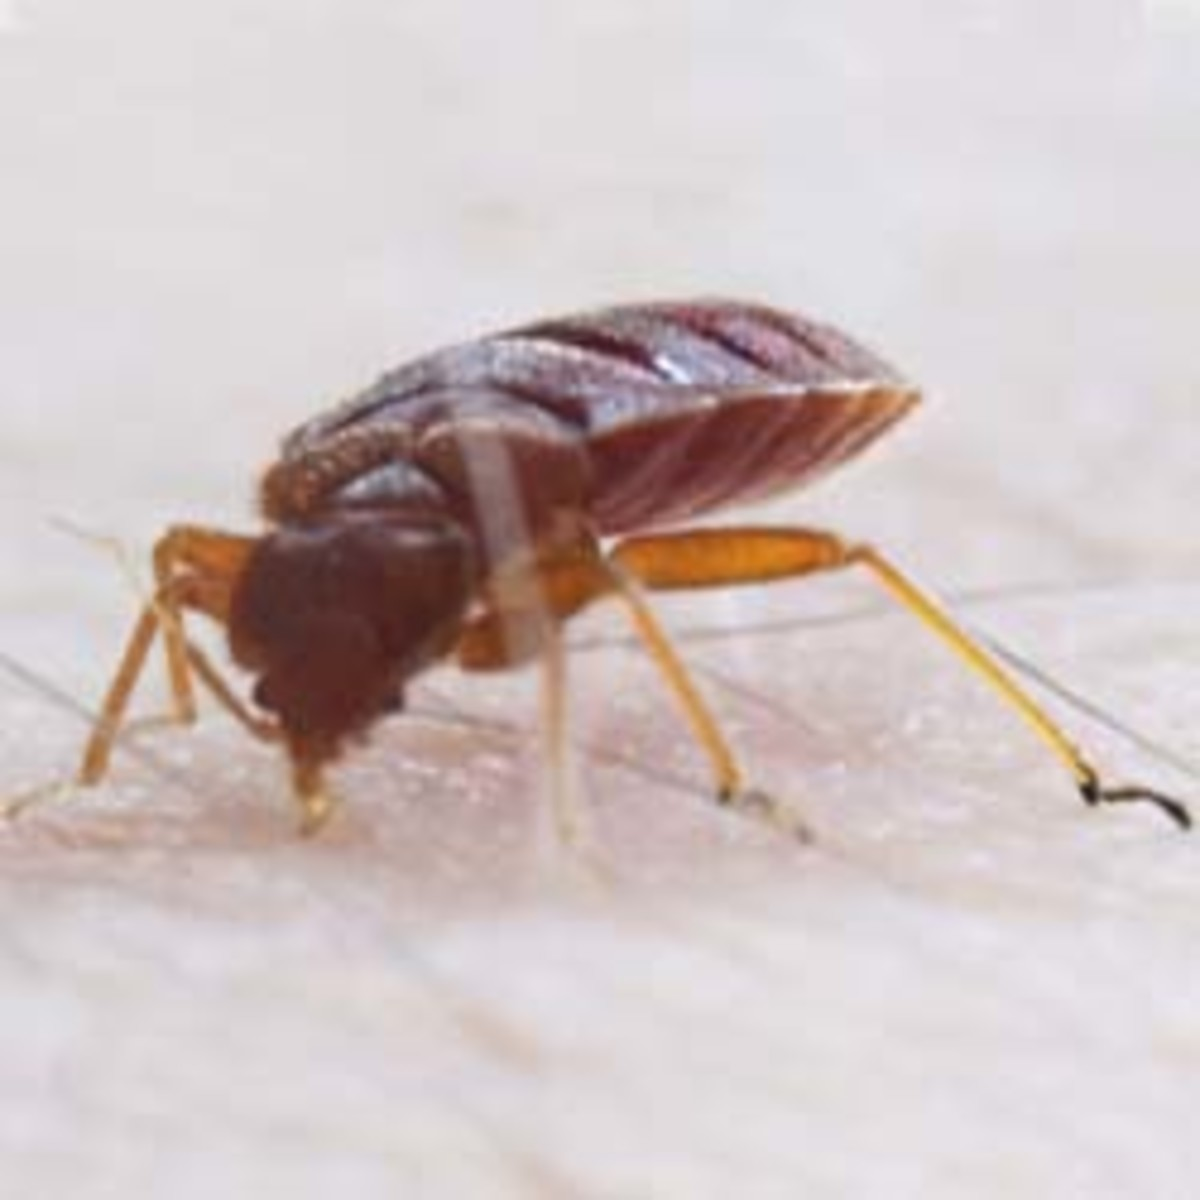 Closeup of a bedbug sucking blood